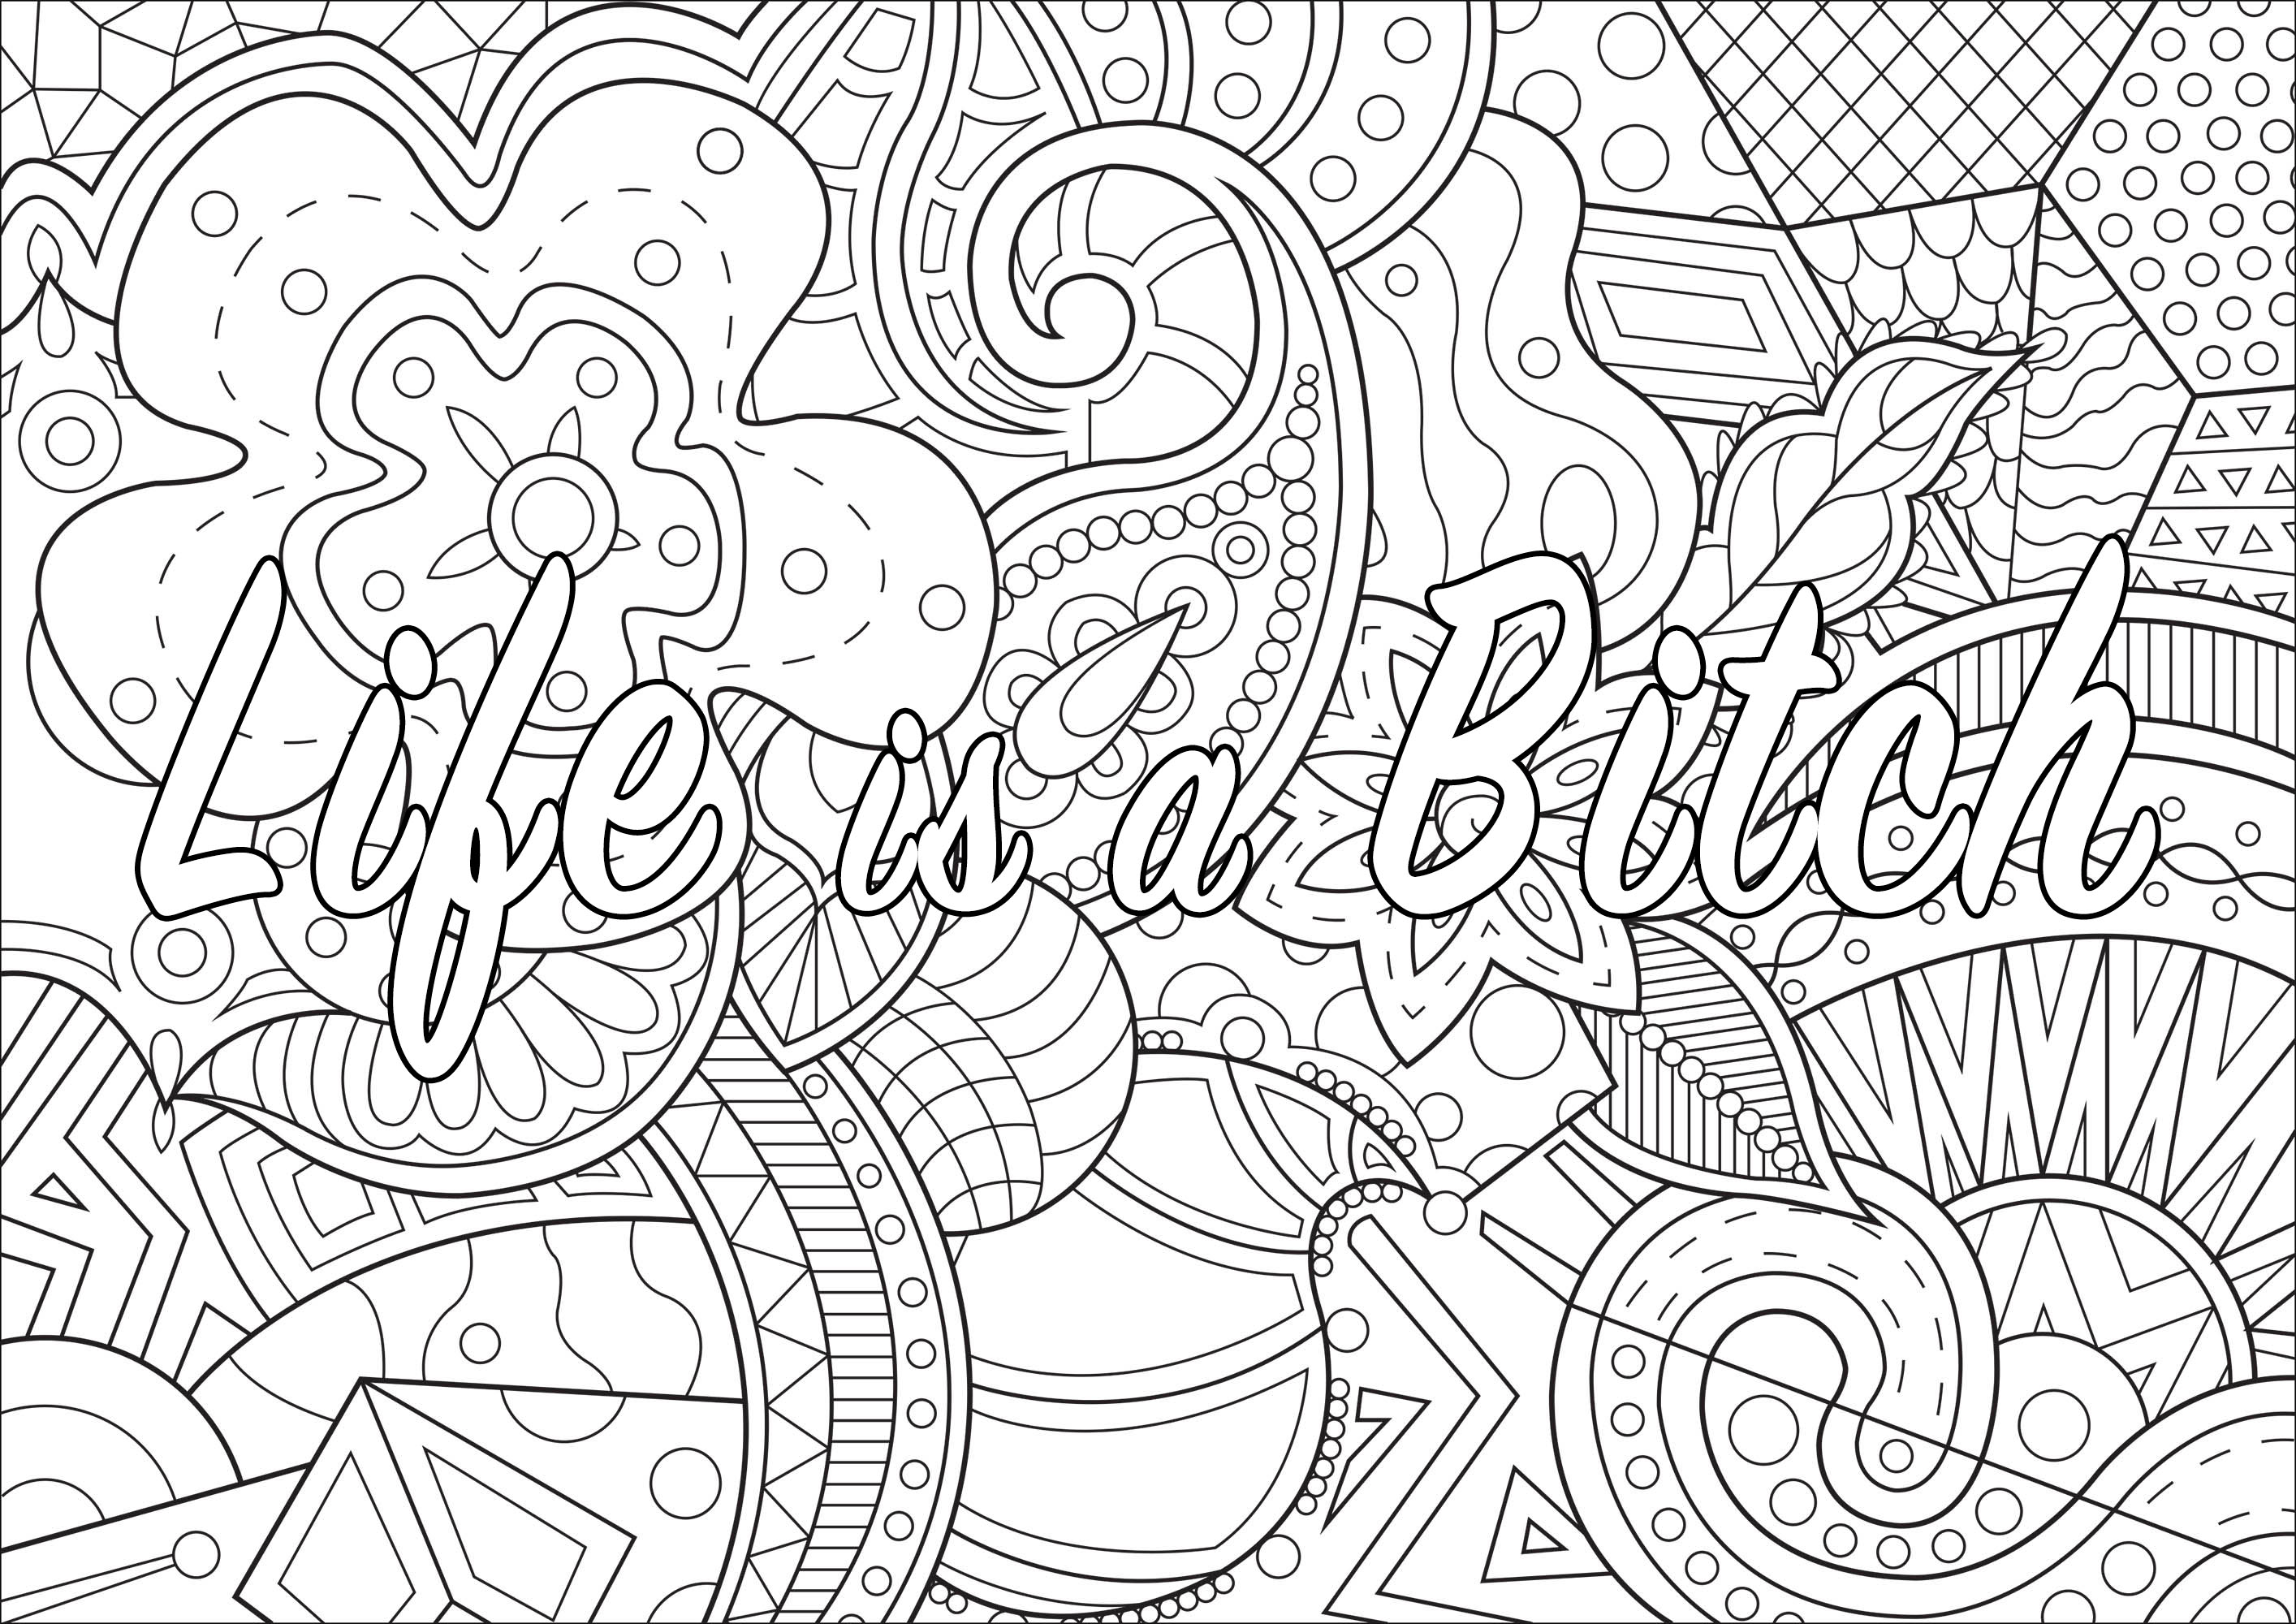 - Life Is A Bitch Swear Word Coloring Page - Swear Word Adult